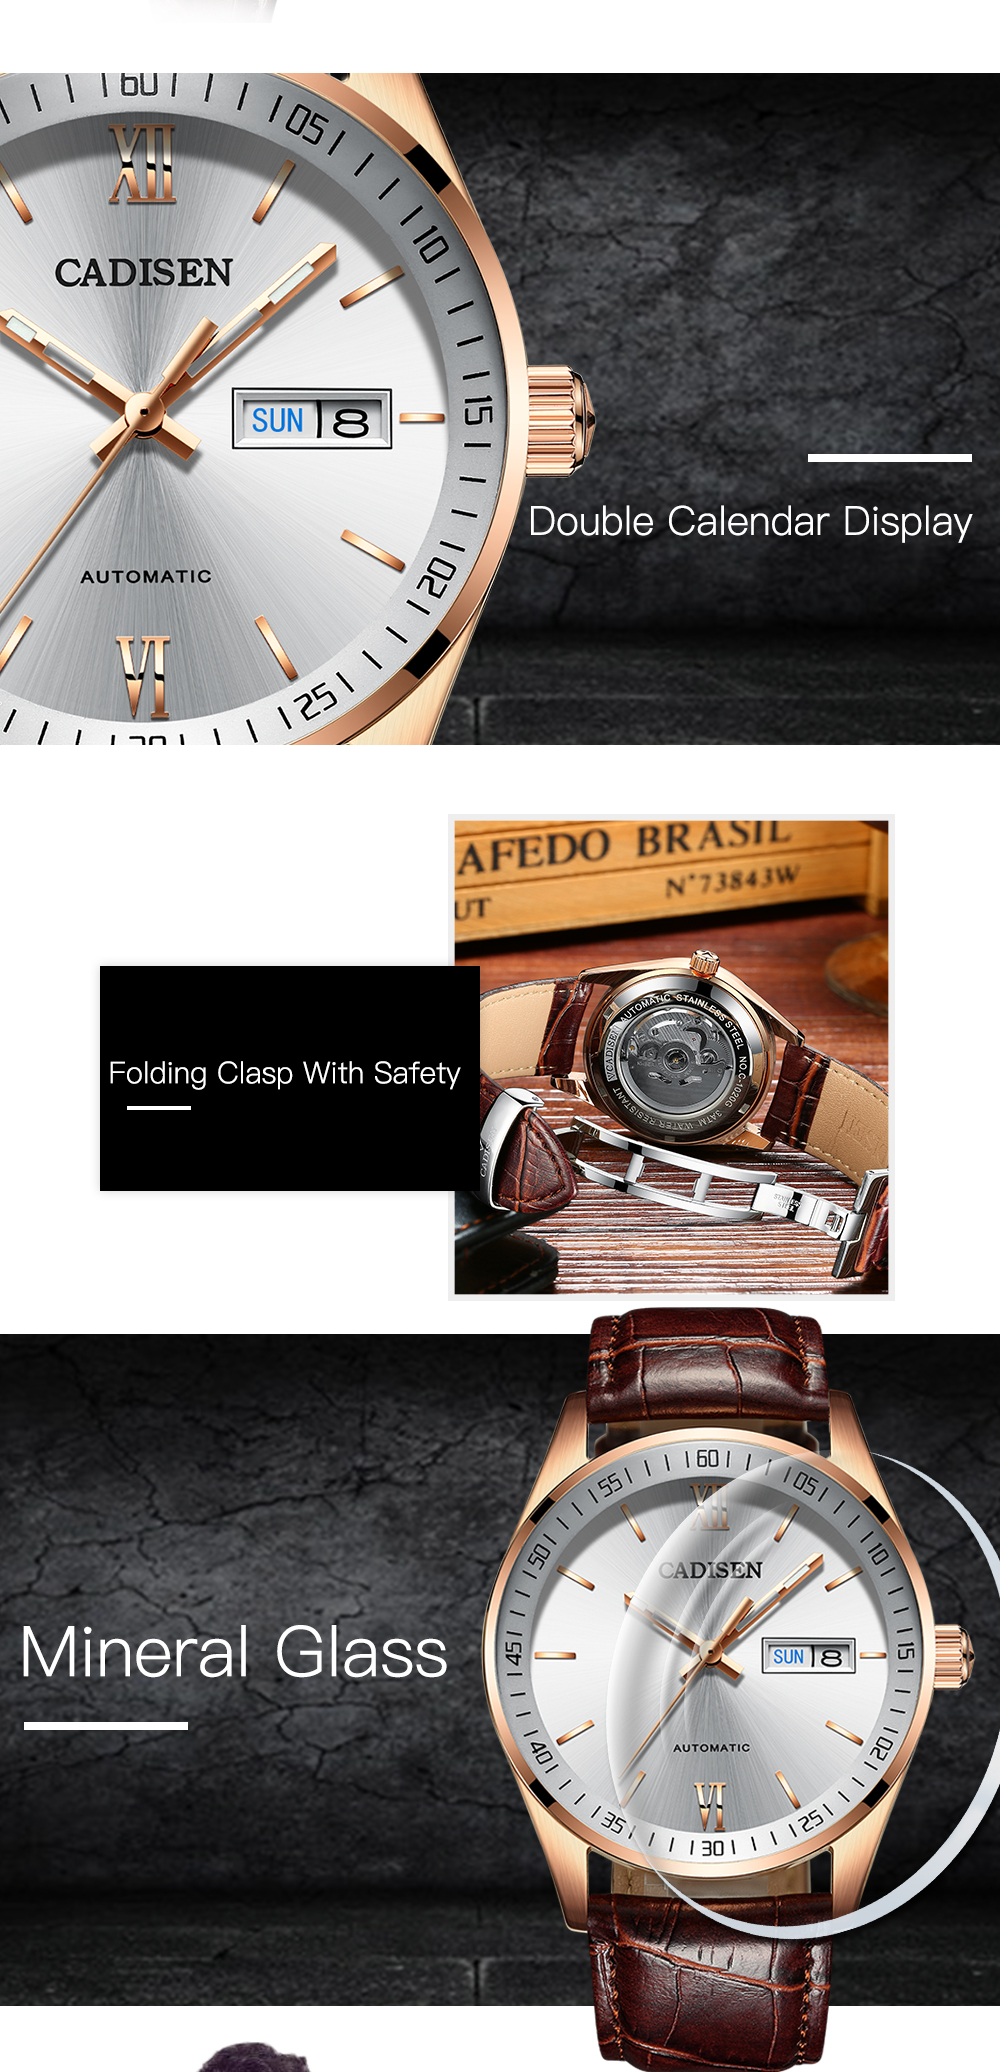 Hot Sale Cadisen Men Watches Top Luxury Sapphire Glass 50M Waterproof Automatic Mechanical Business Role Style Watch- Brown Leather Band+White Dial